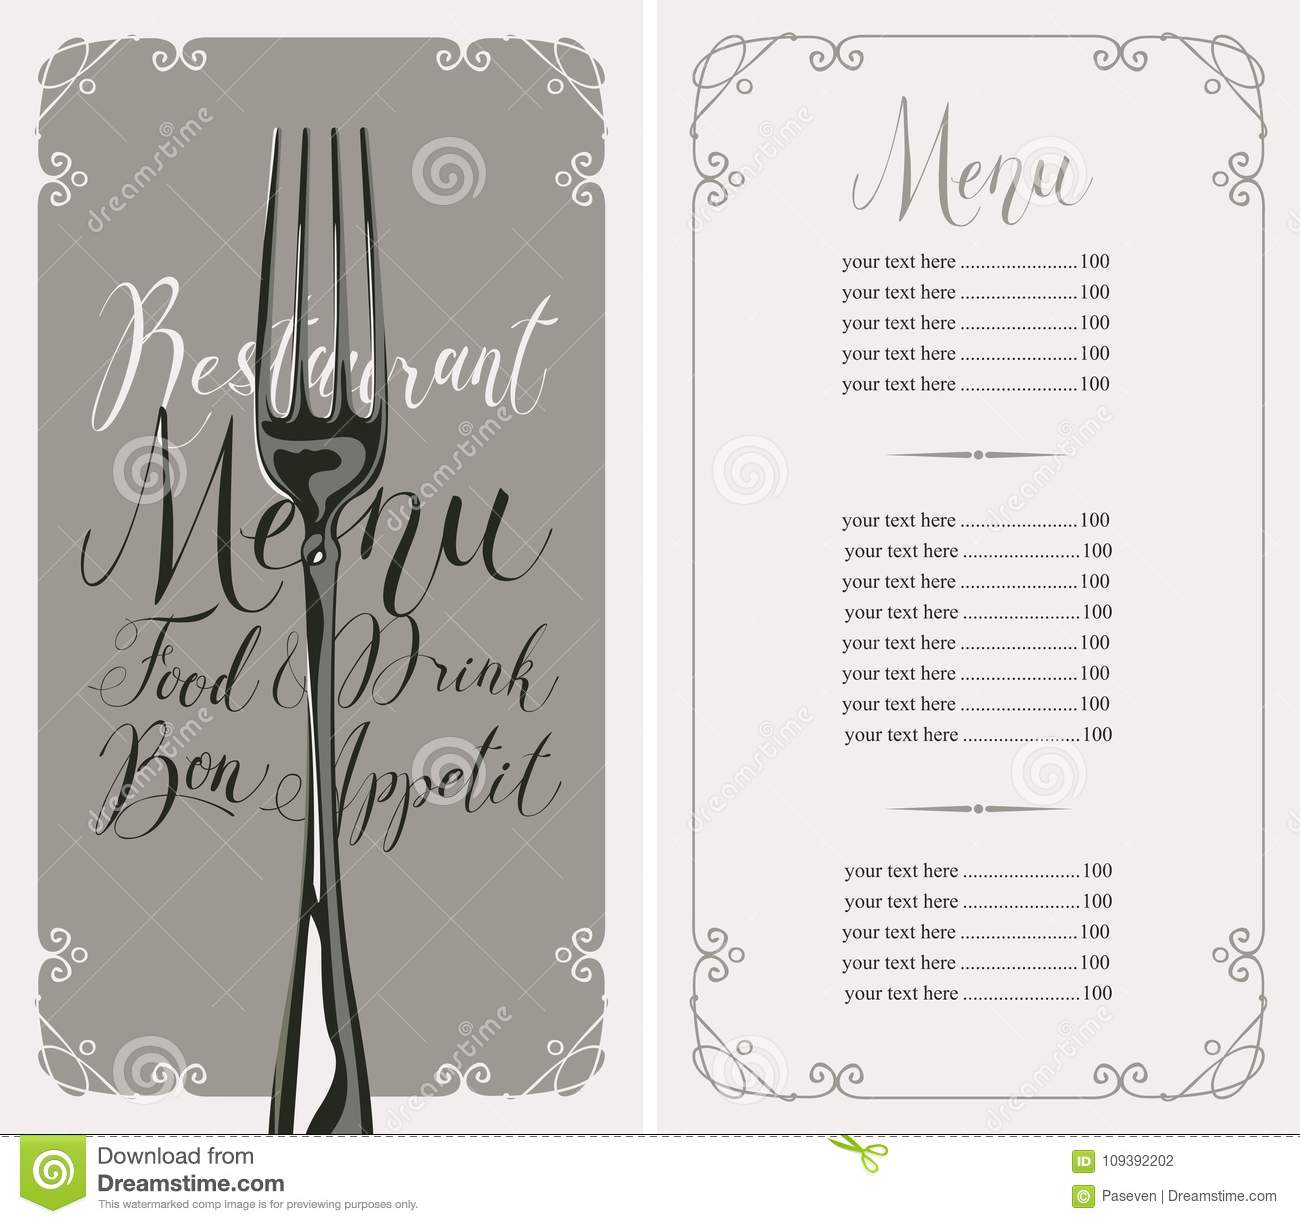 Restaurant Menu With Price List And Realistic Fork Stock Vector ...